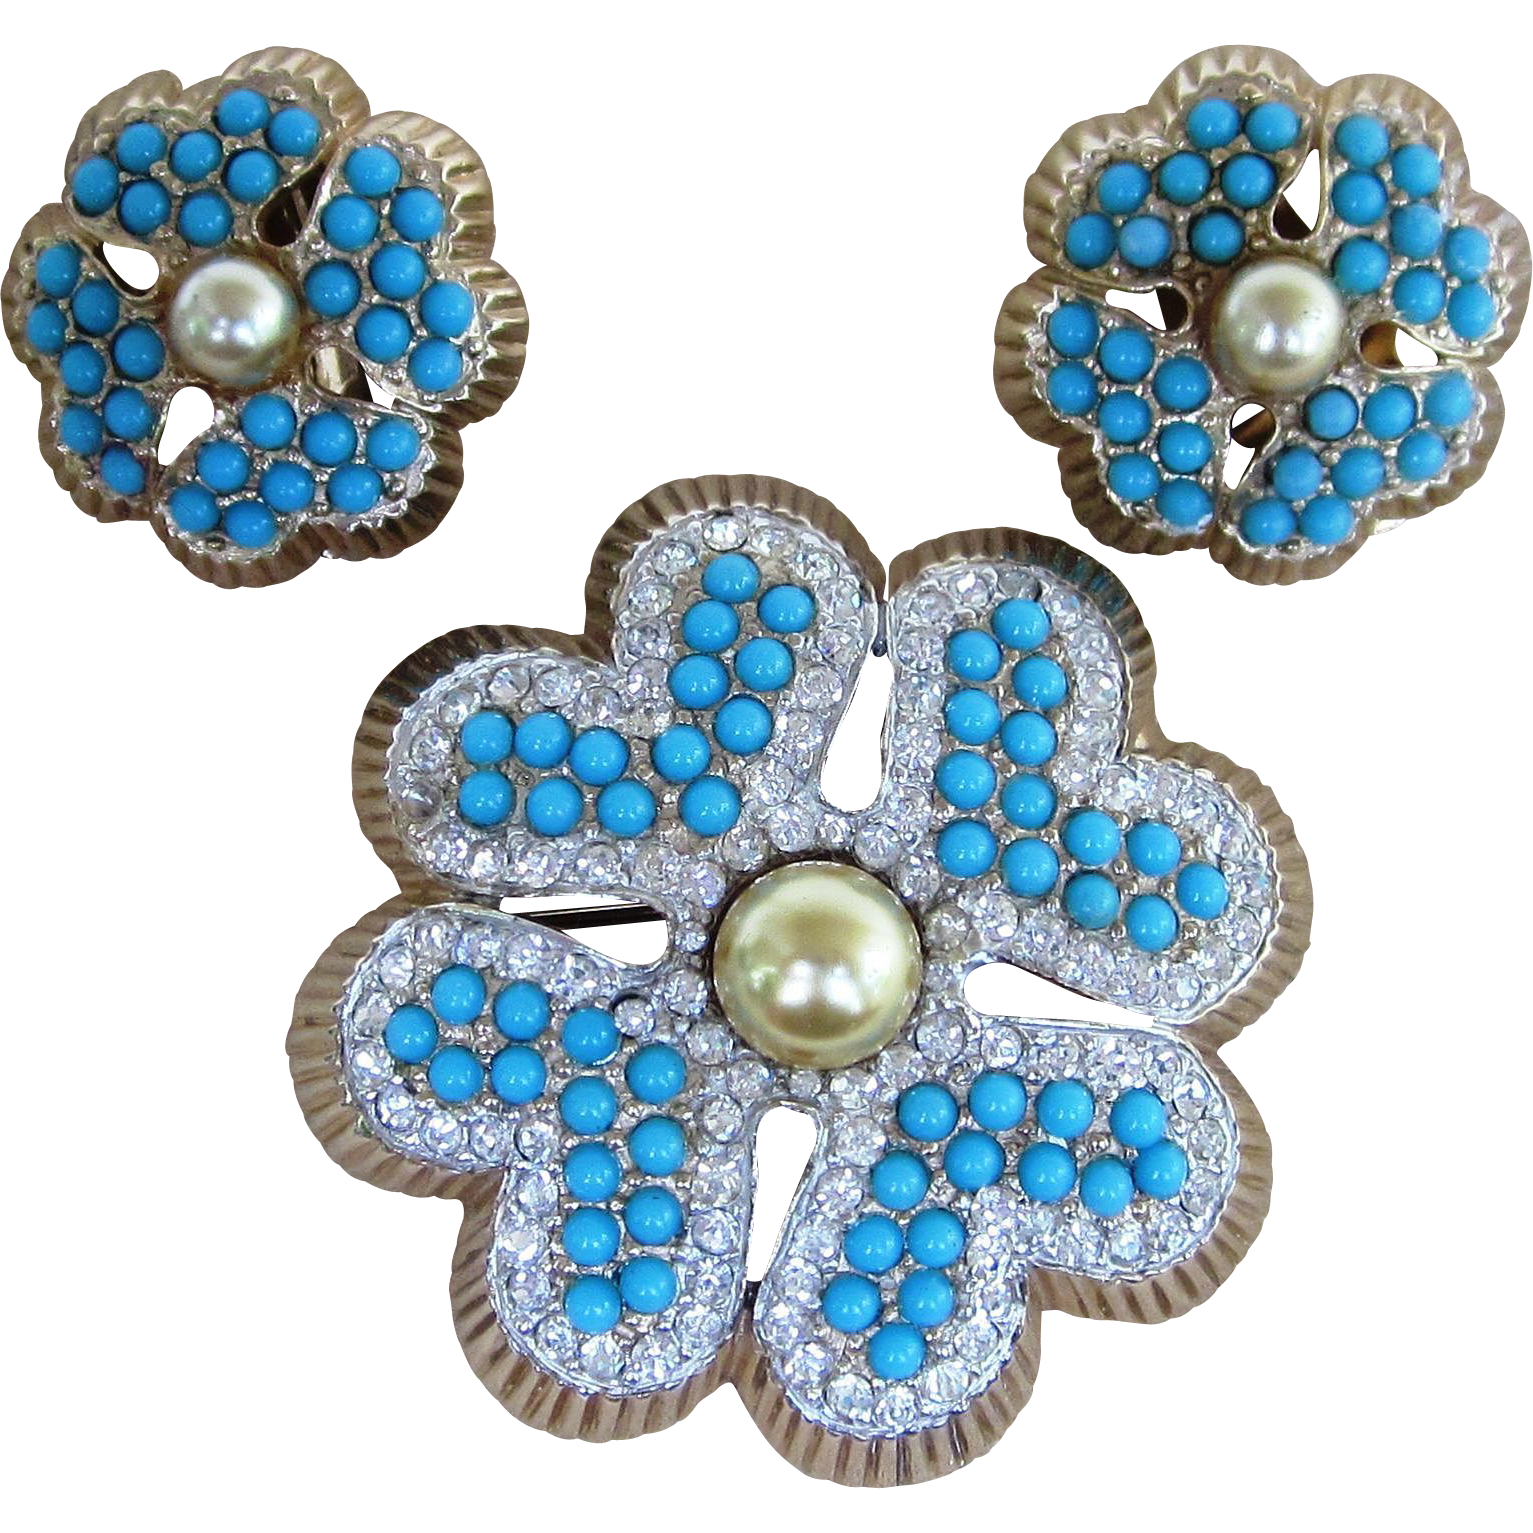 Jomaz Amazing Rare and Unique Vintage Brooch and Earrings Set